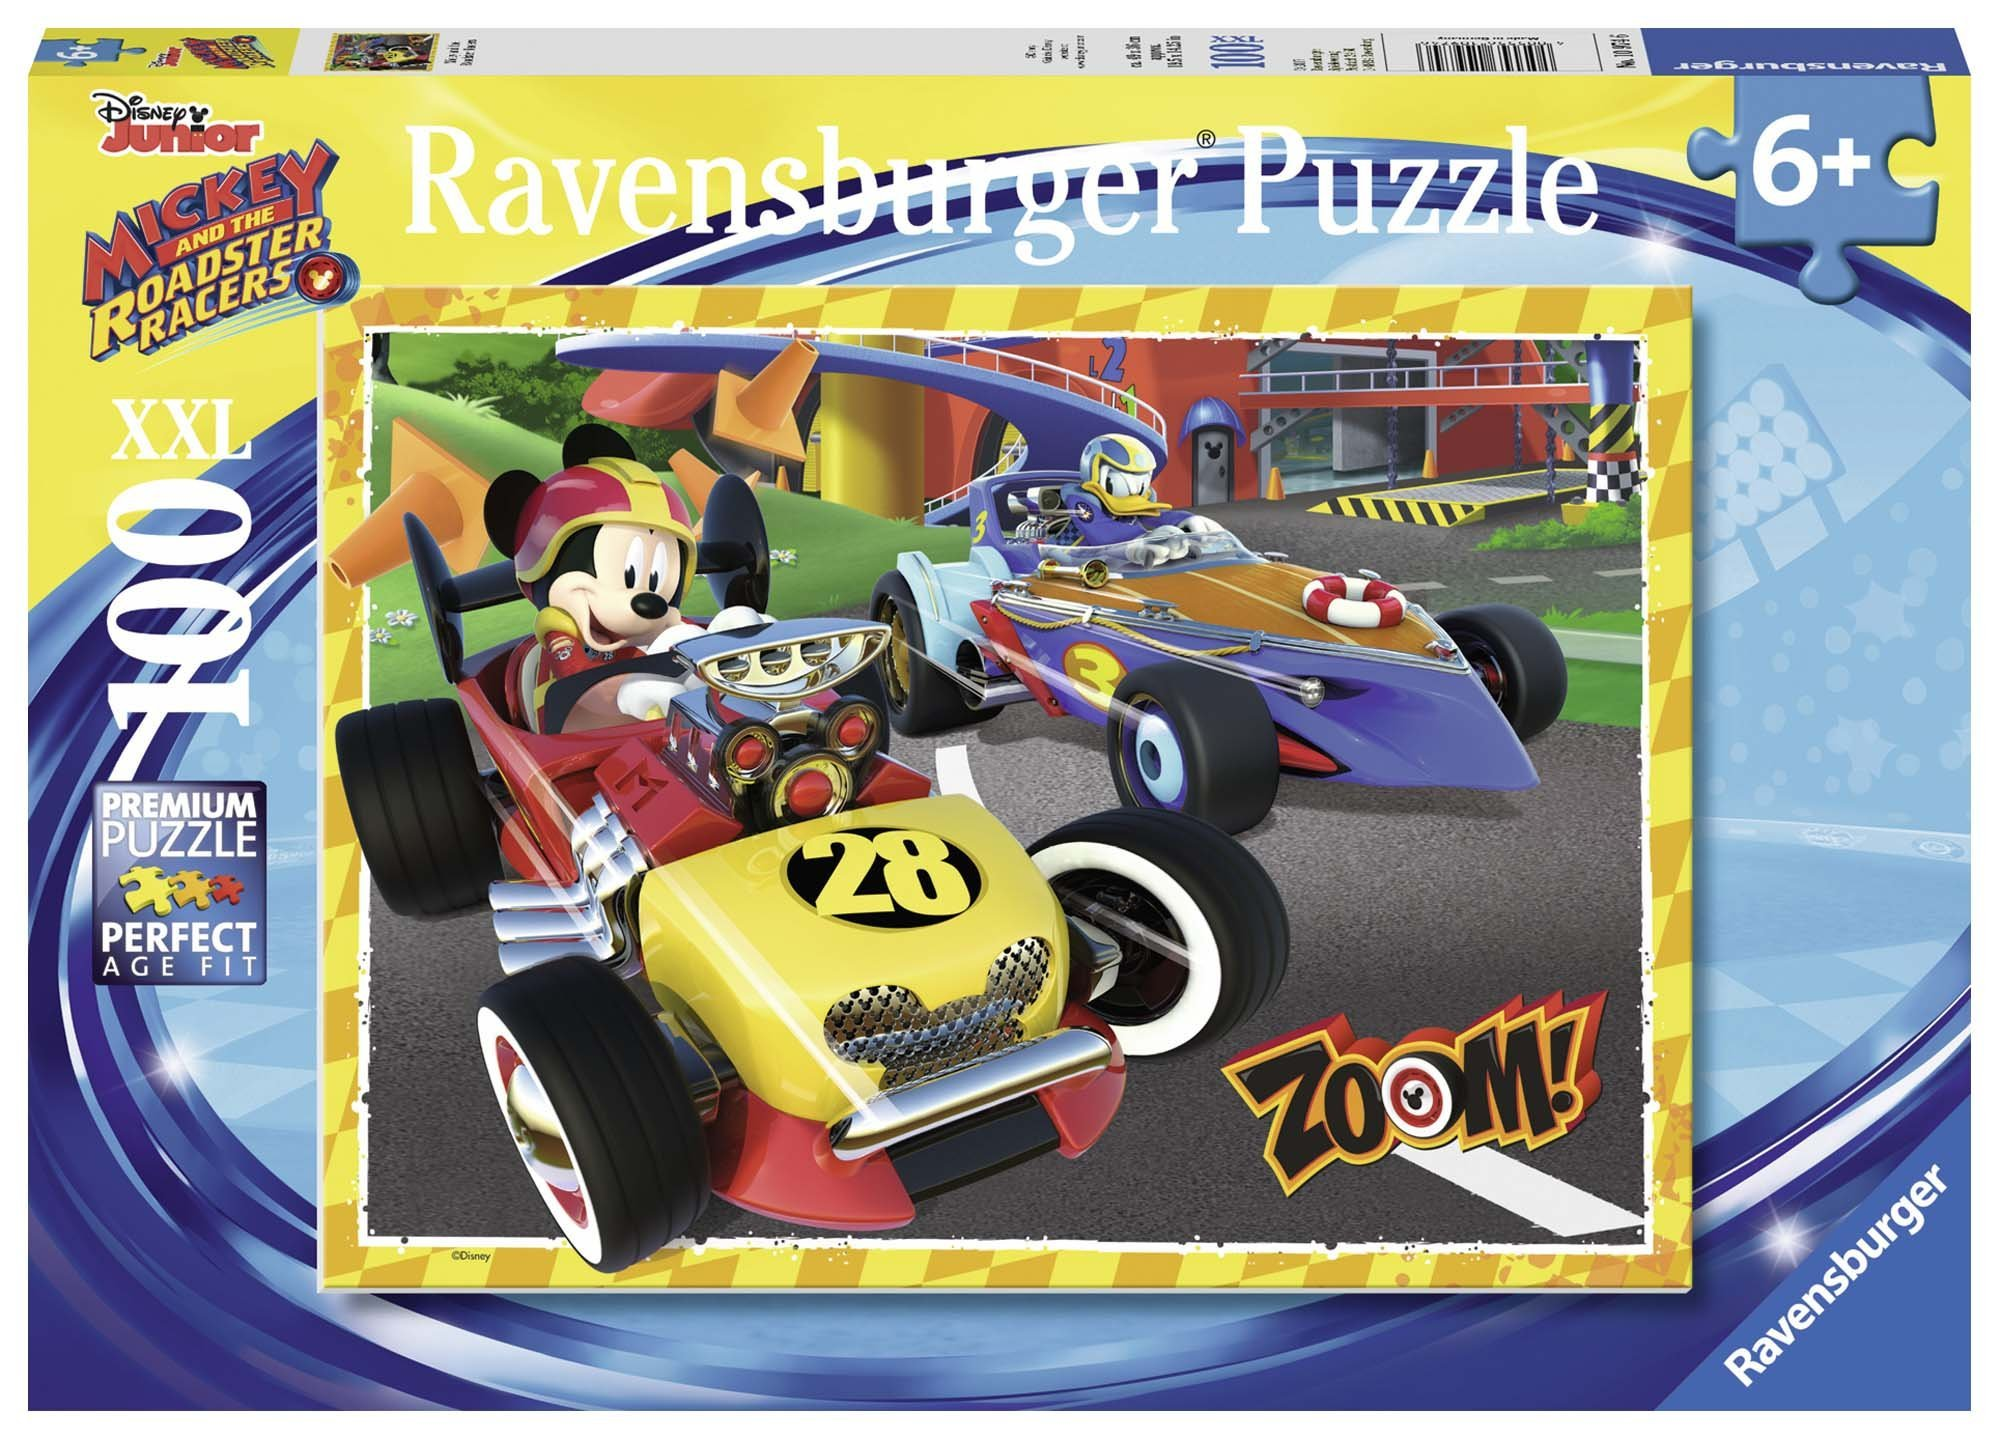 Ravensburger Disney Mickey & The Roadster Racers Go Mickey! 100 Piece Jigsaw Puzzle for Kids – Every Piece is Unique, Pieces Fit Together Perfectly